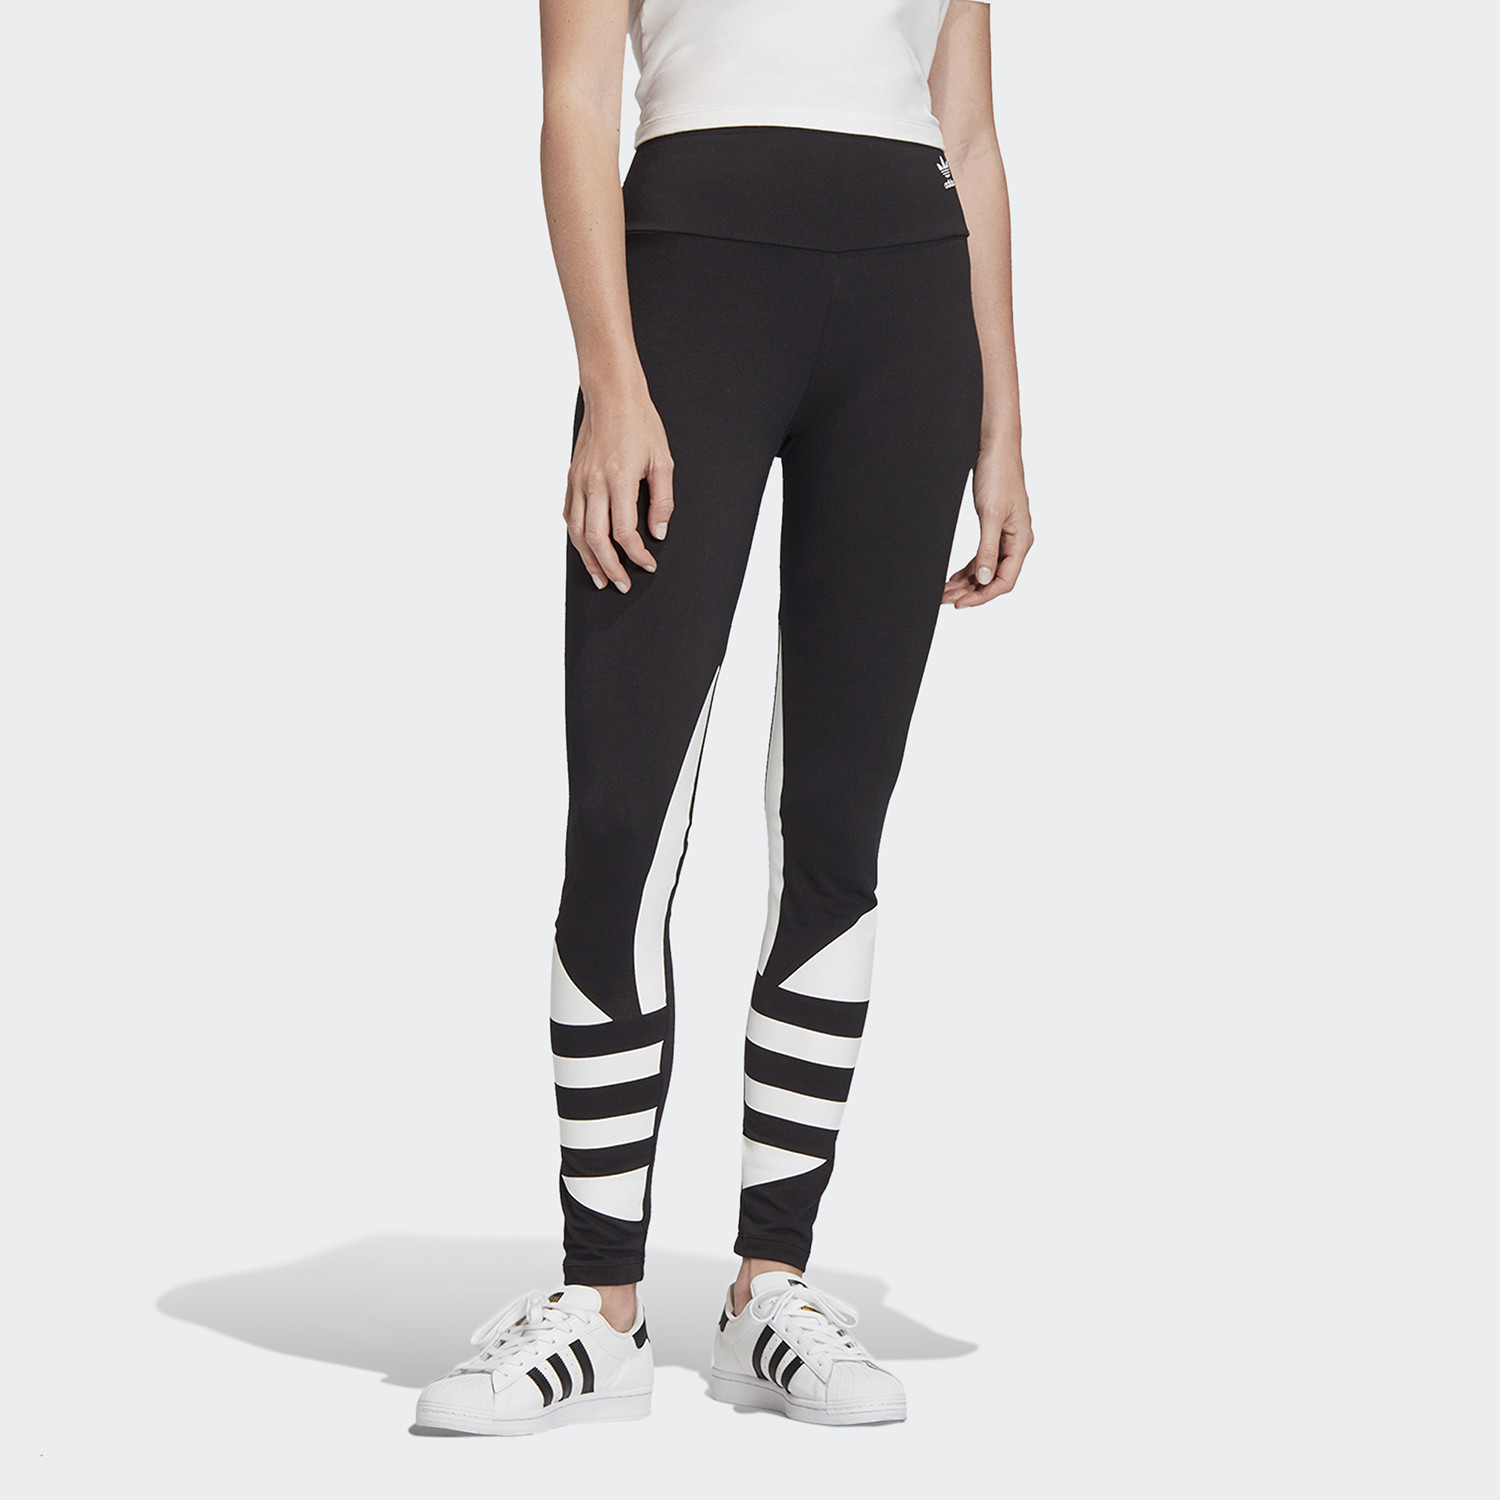 adidas Originals Large Logo Women's Tights (9000045806_1480)